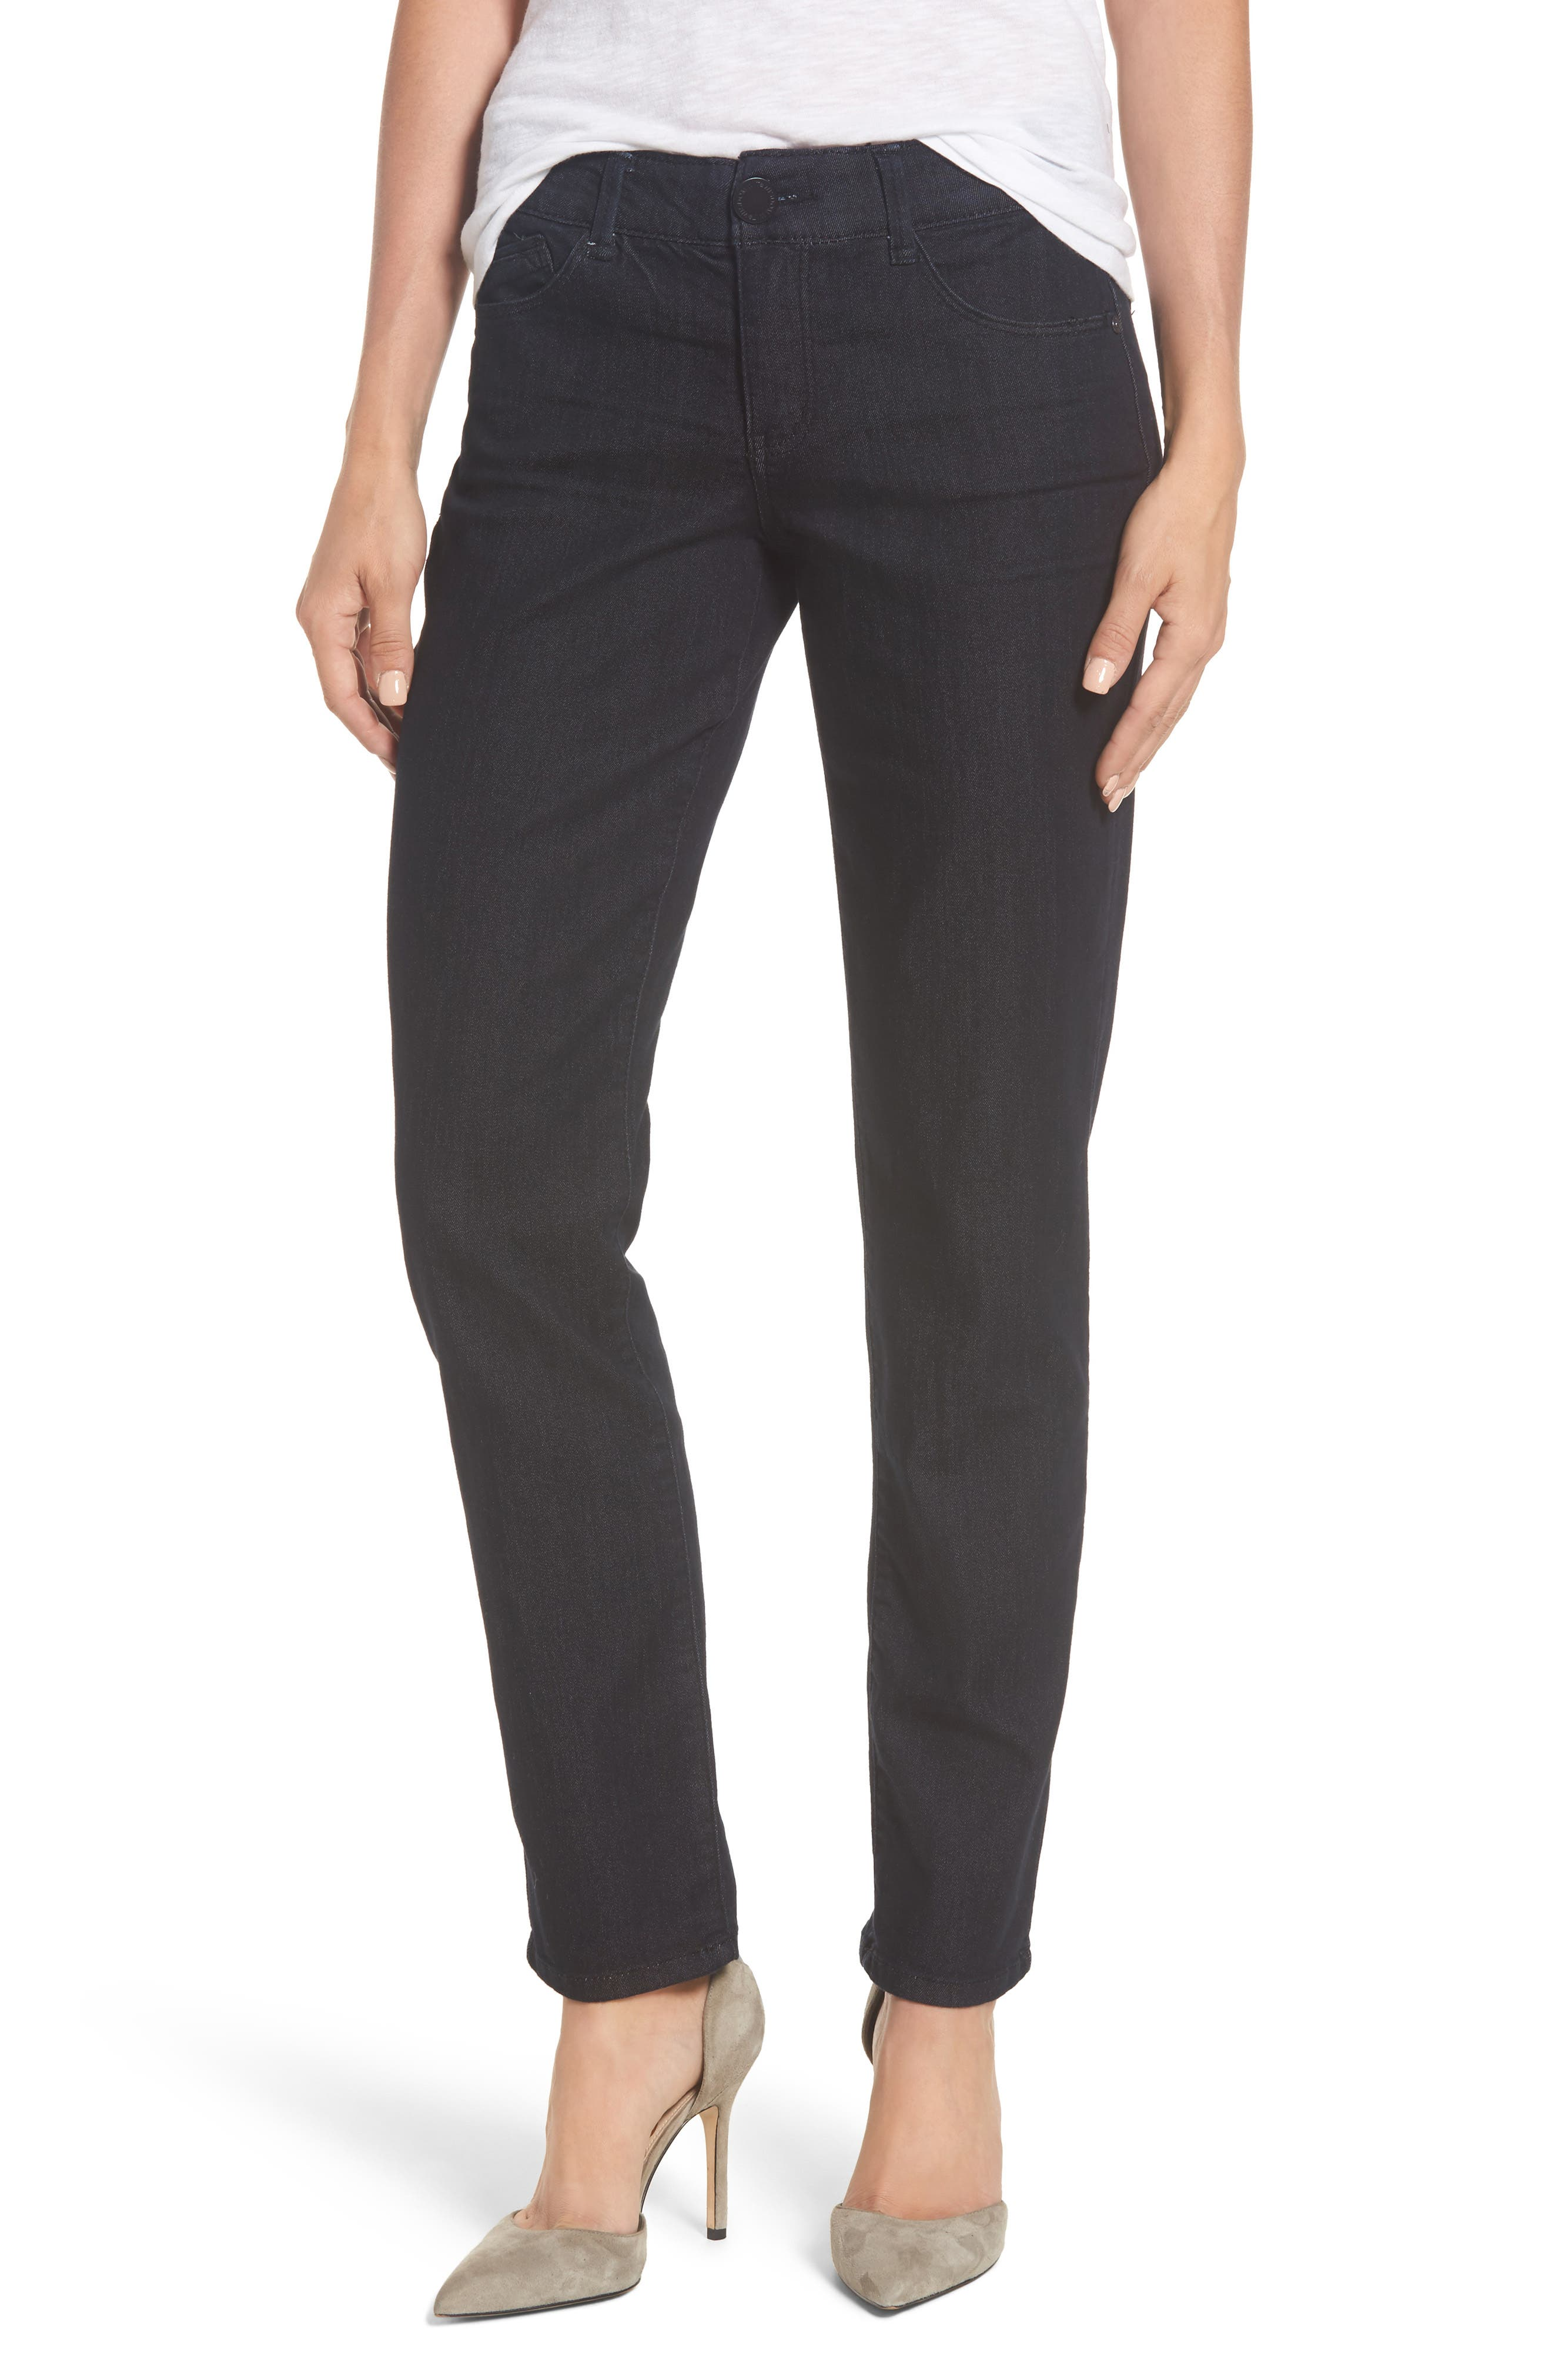 Main Image - Wit & Wisdom Ab-solution Straight Leg Jeans (Regular & Petite) (Nordstrom Exclusive)